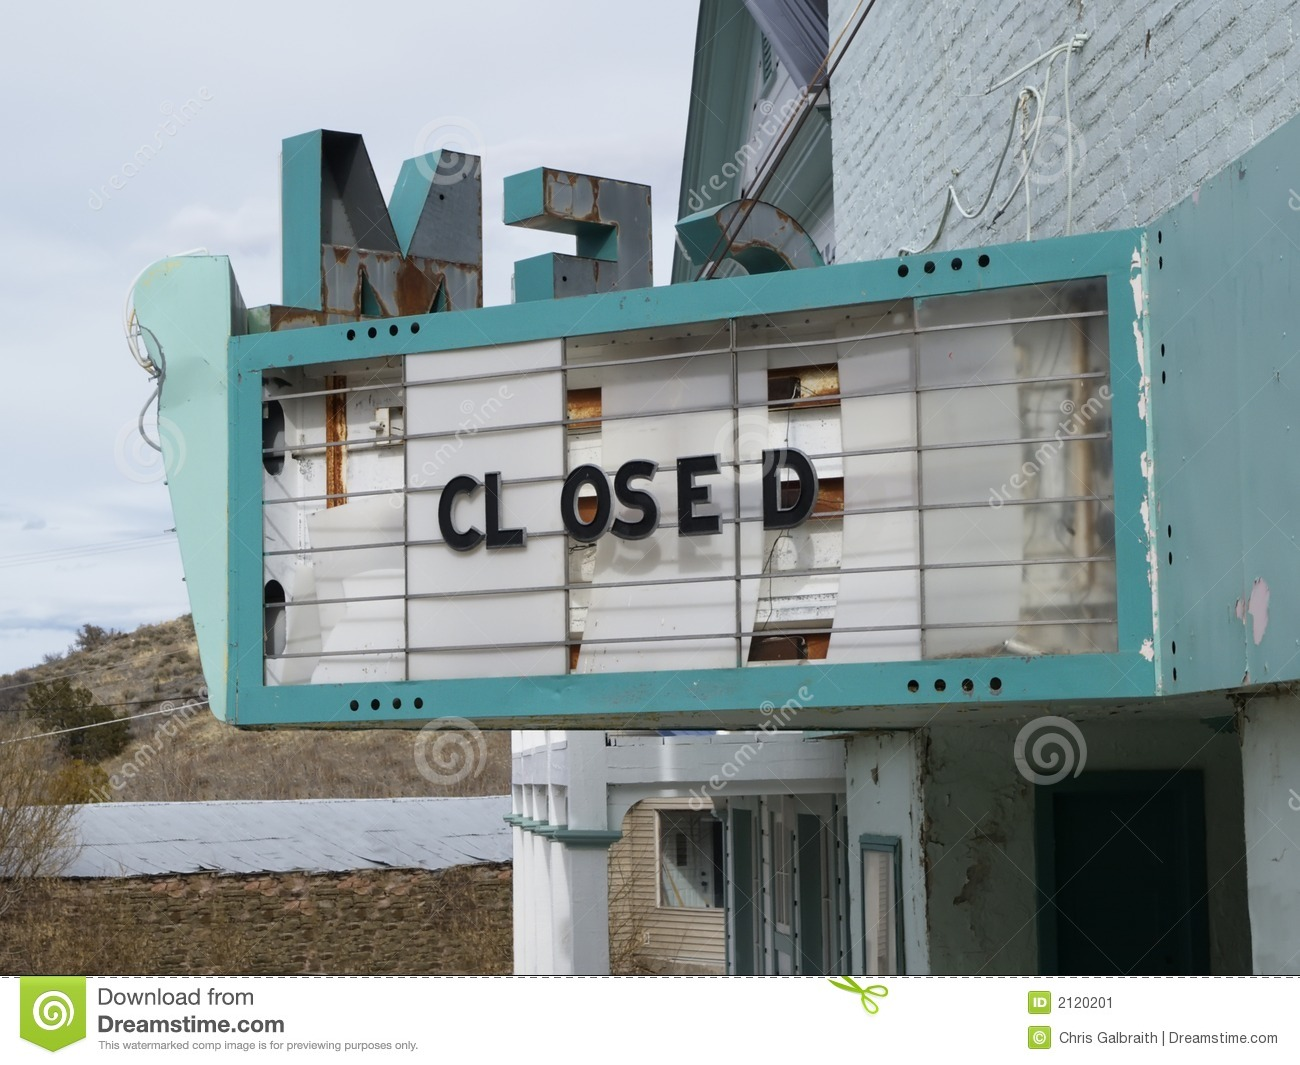 Closed Theater Stock Image - Image: 2120201